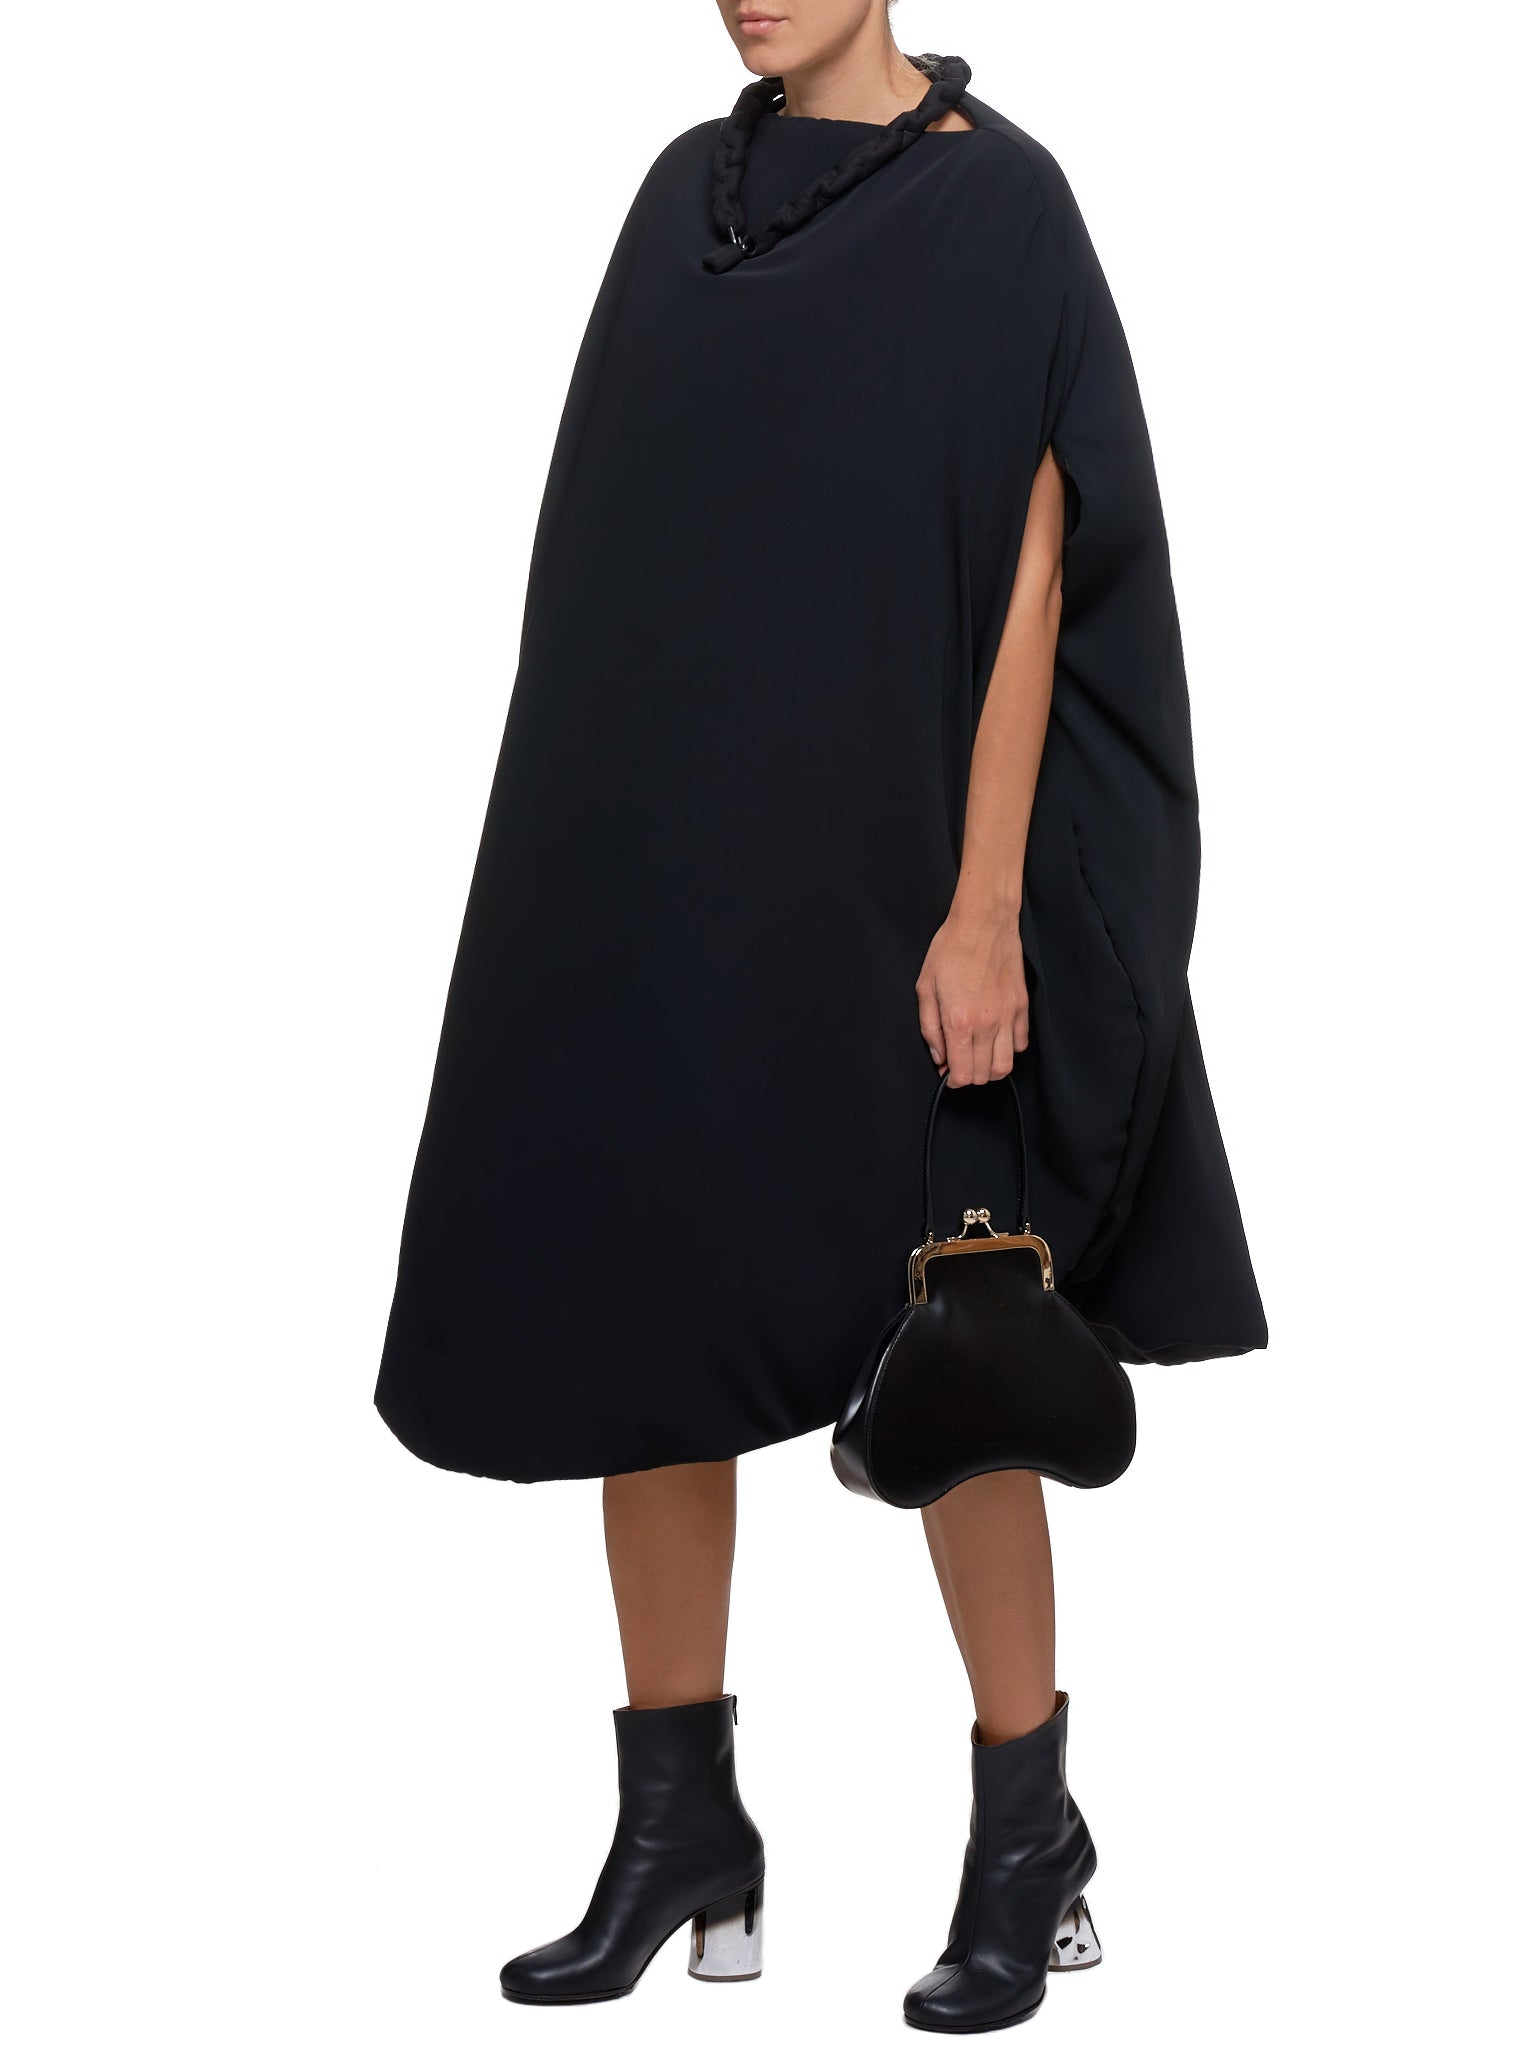 MM6 Maison Margiela Dress - Hlorenzo Style